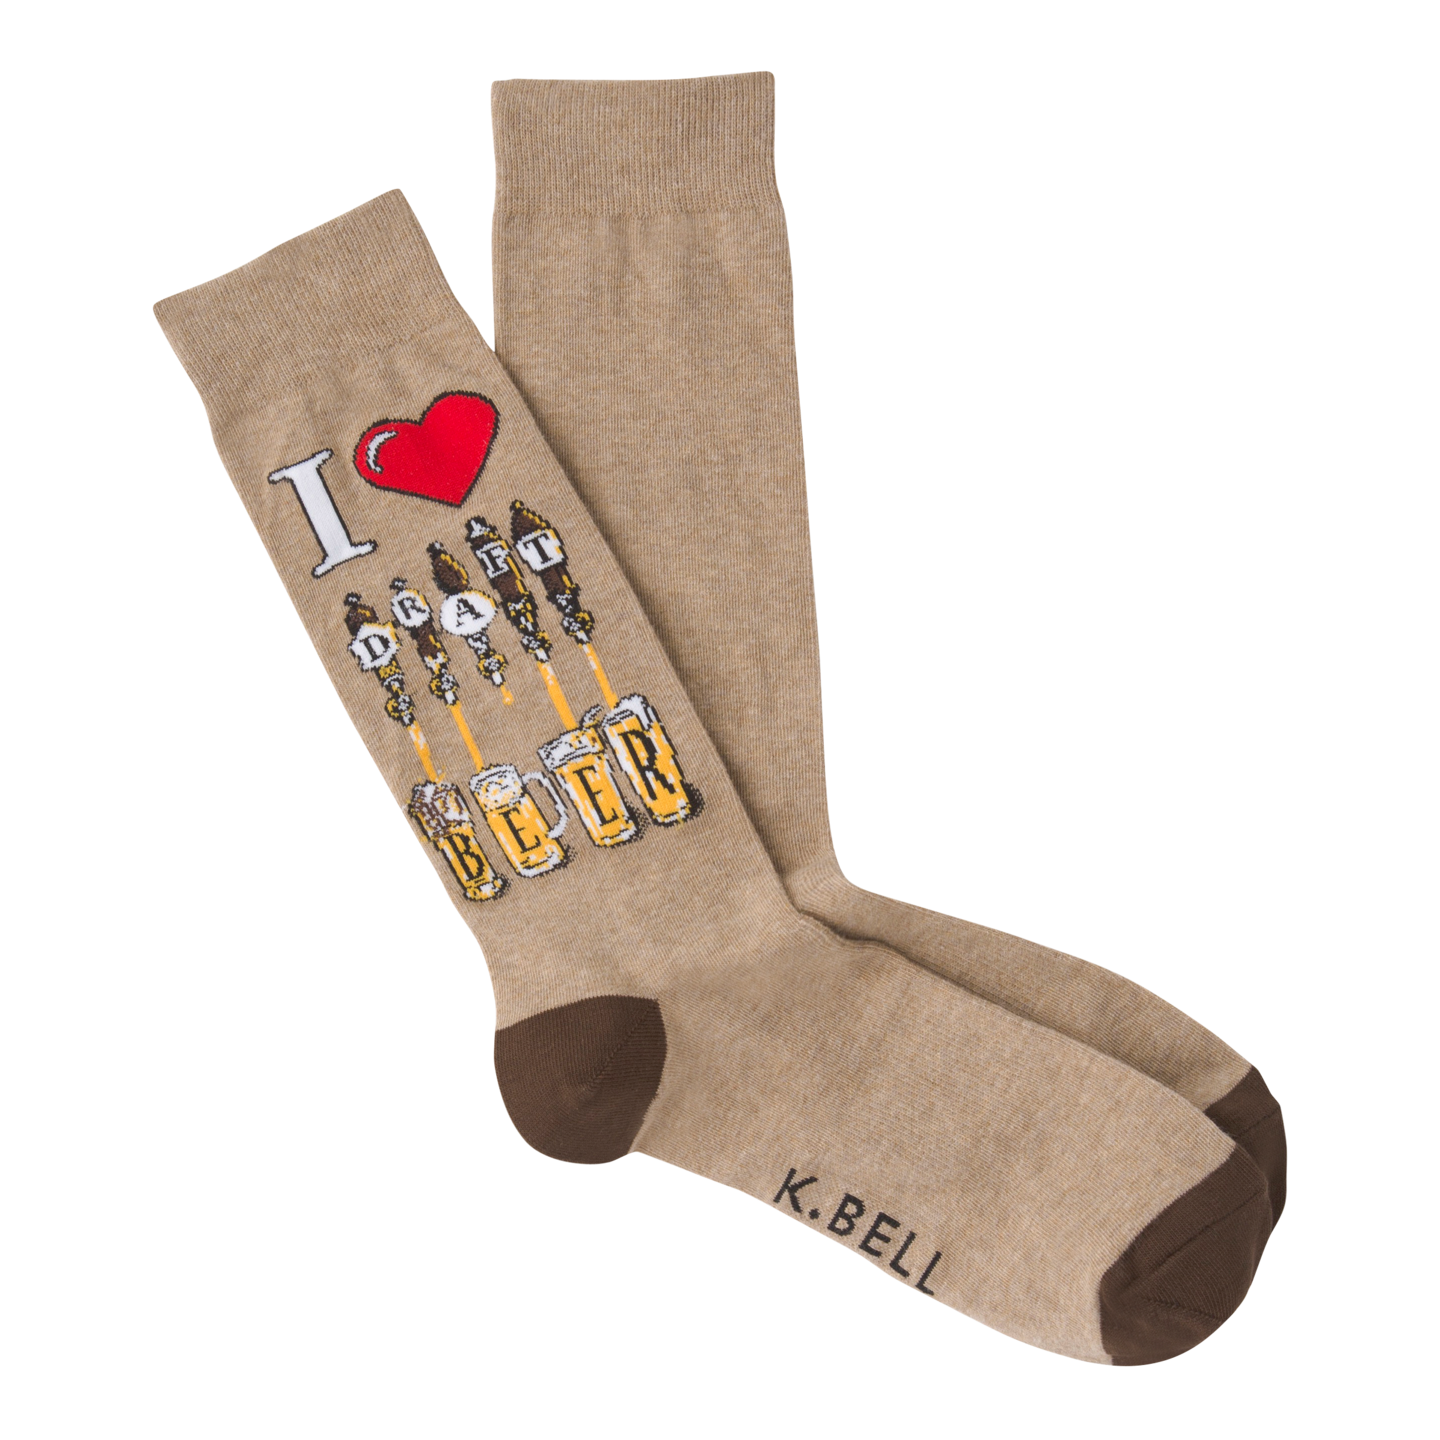 Draft Beer crew socks